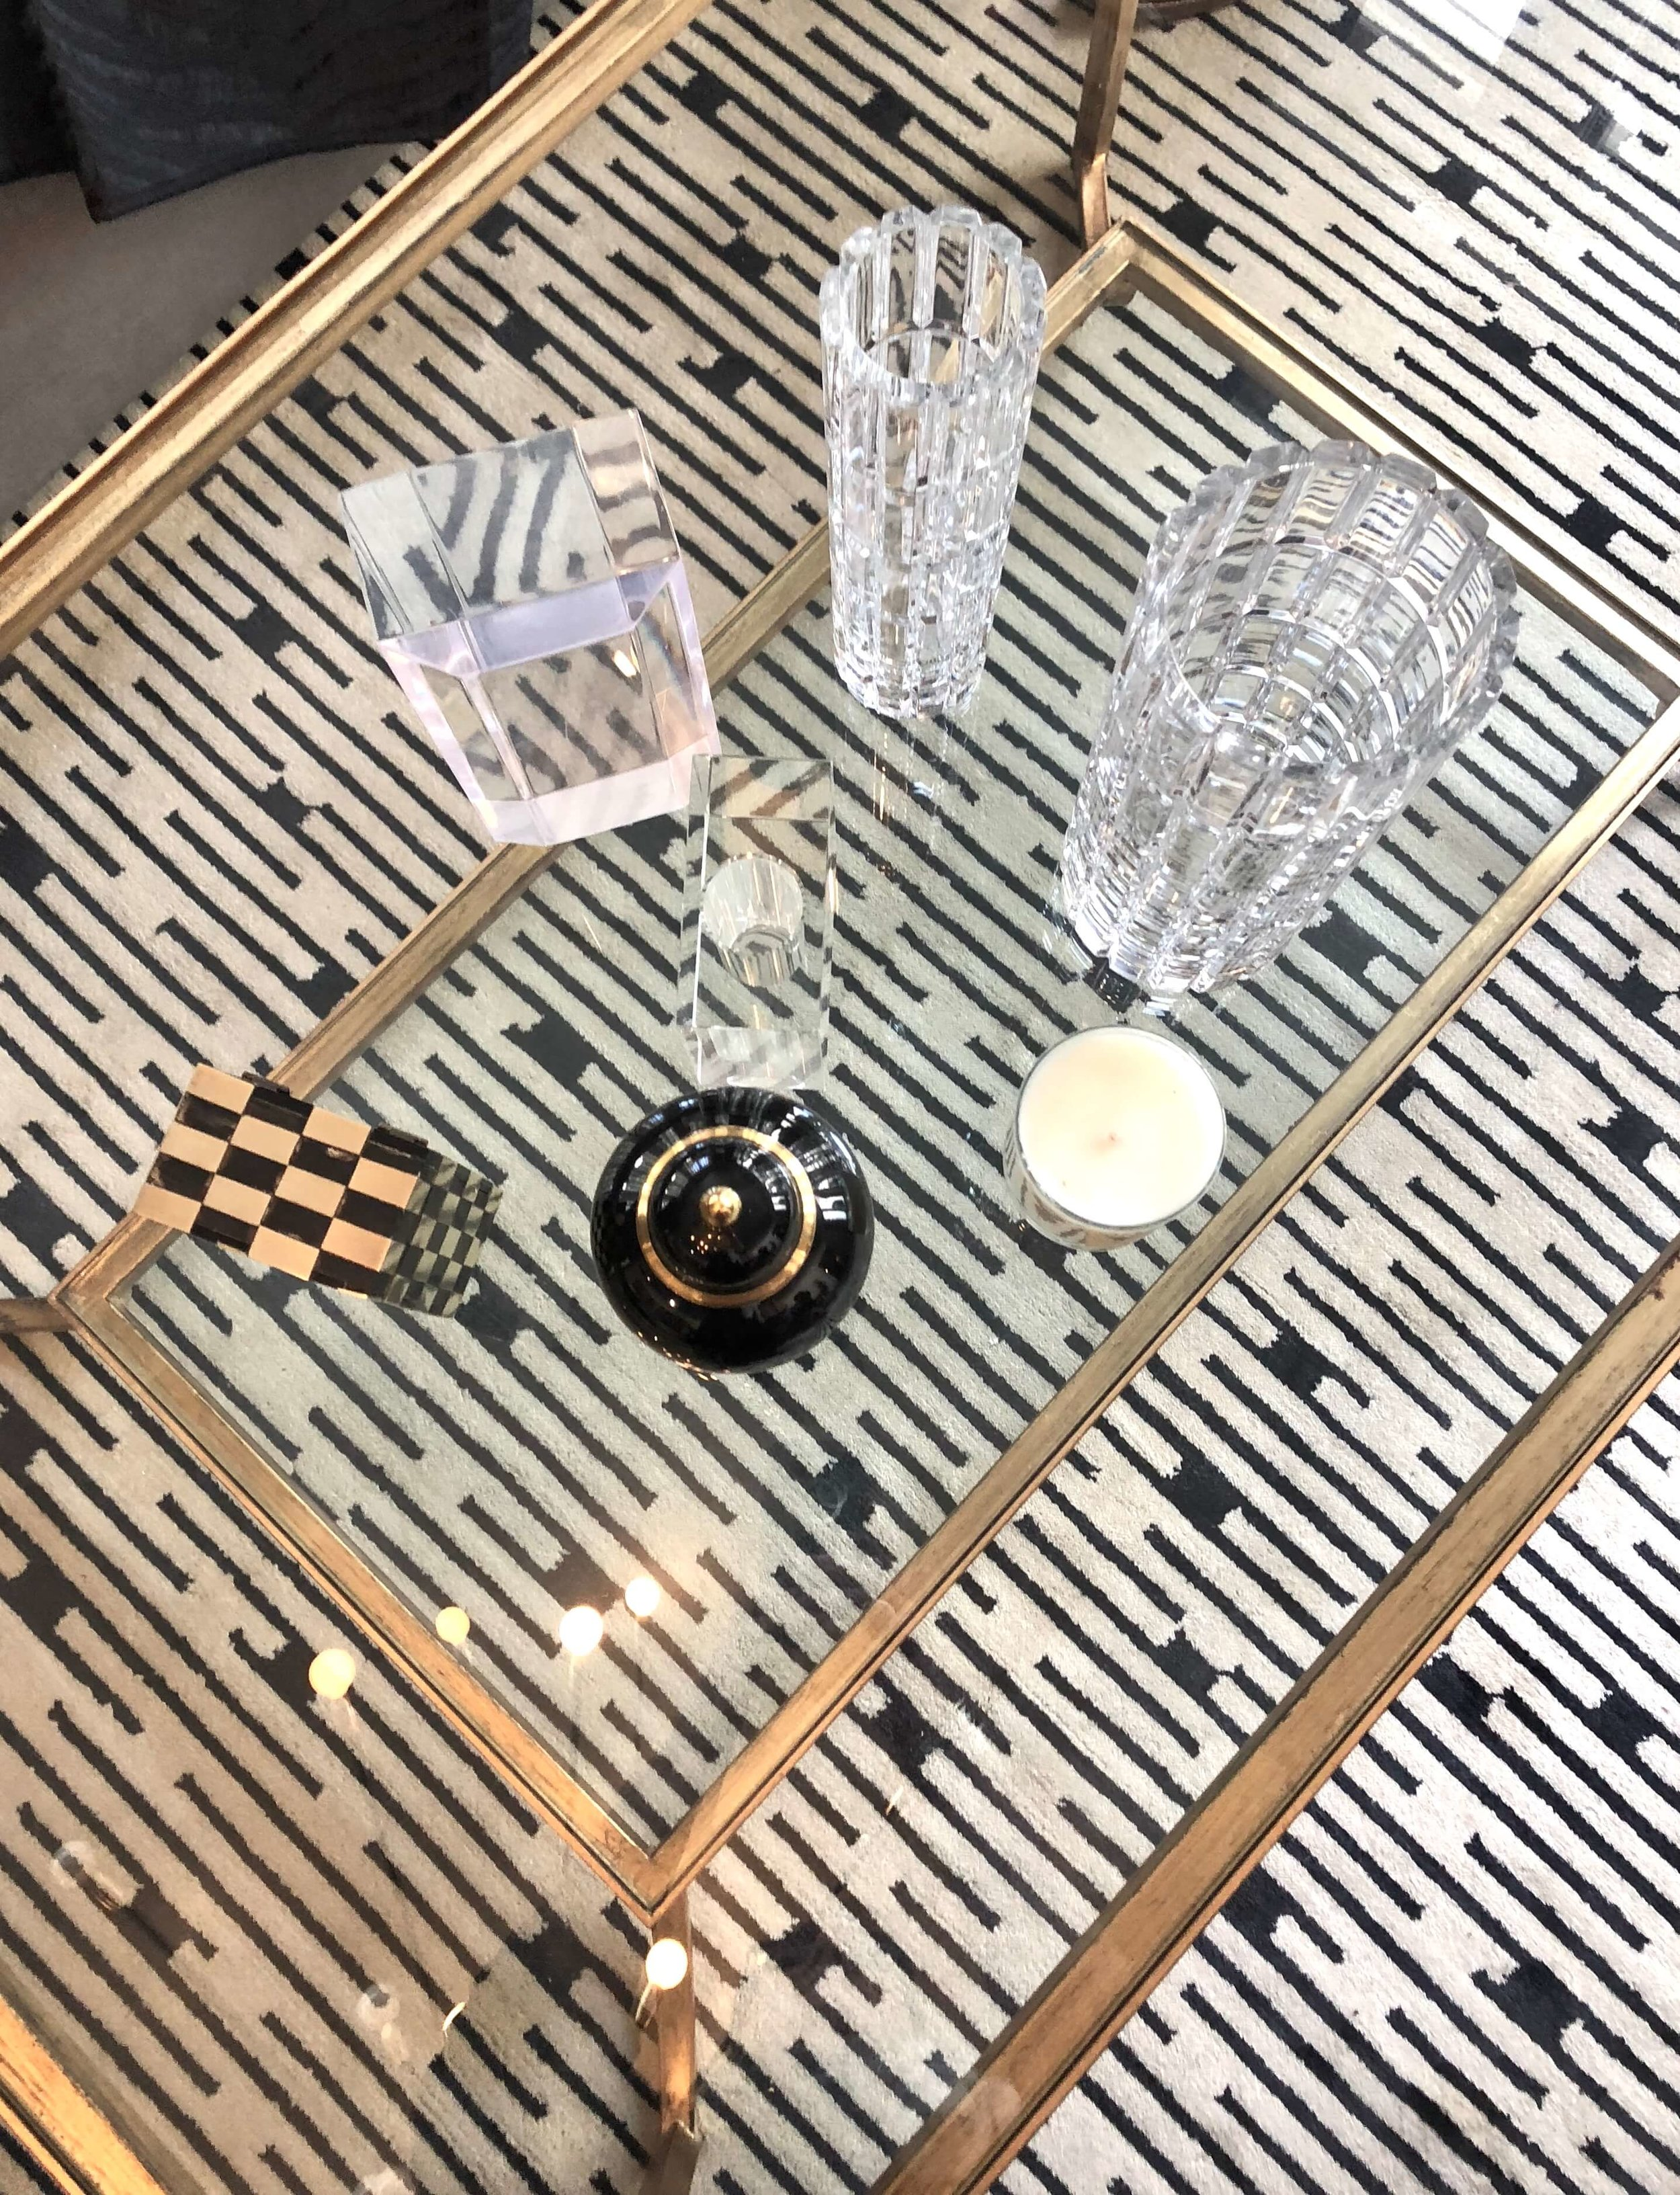 Great striped black and white rug under a glass top cocktail table - Michael Wrusch of Michael Wrusch Designs #coffeetable #blackandwhiterug